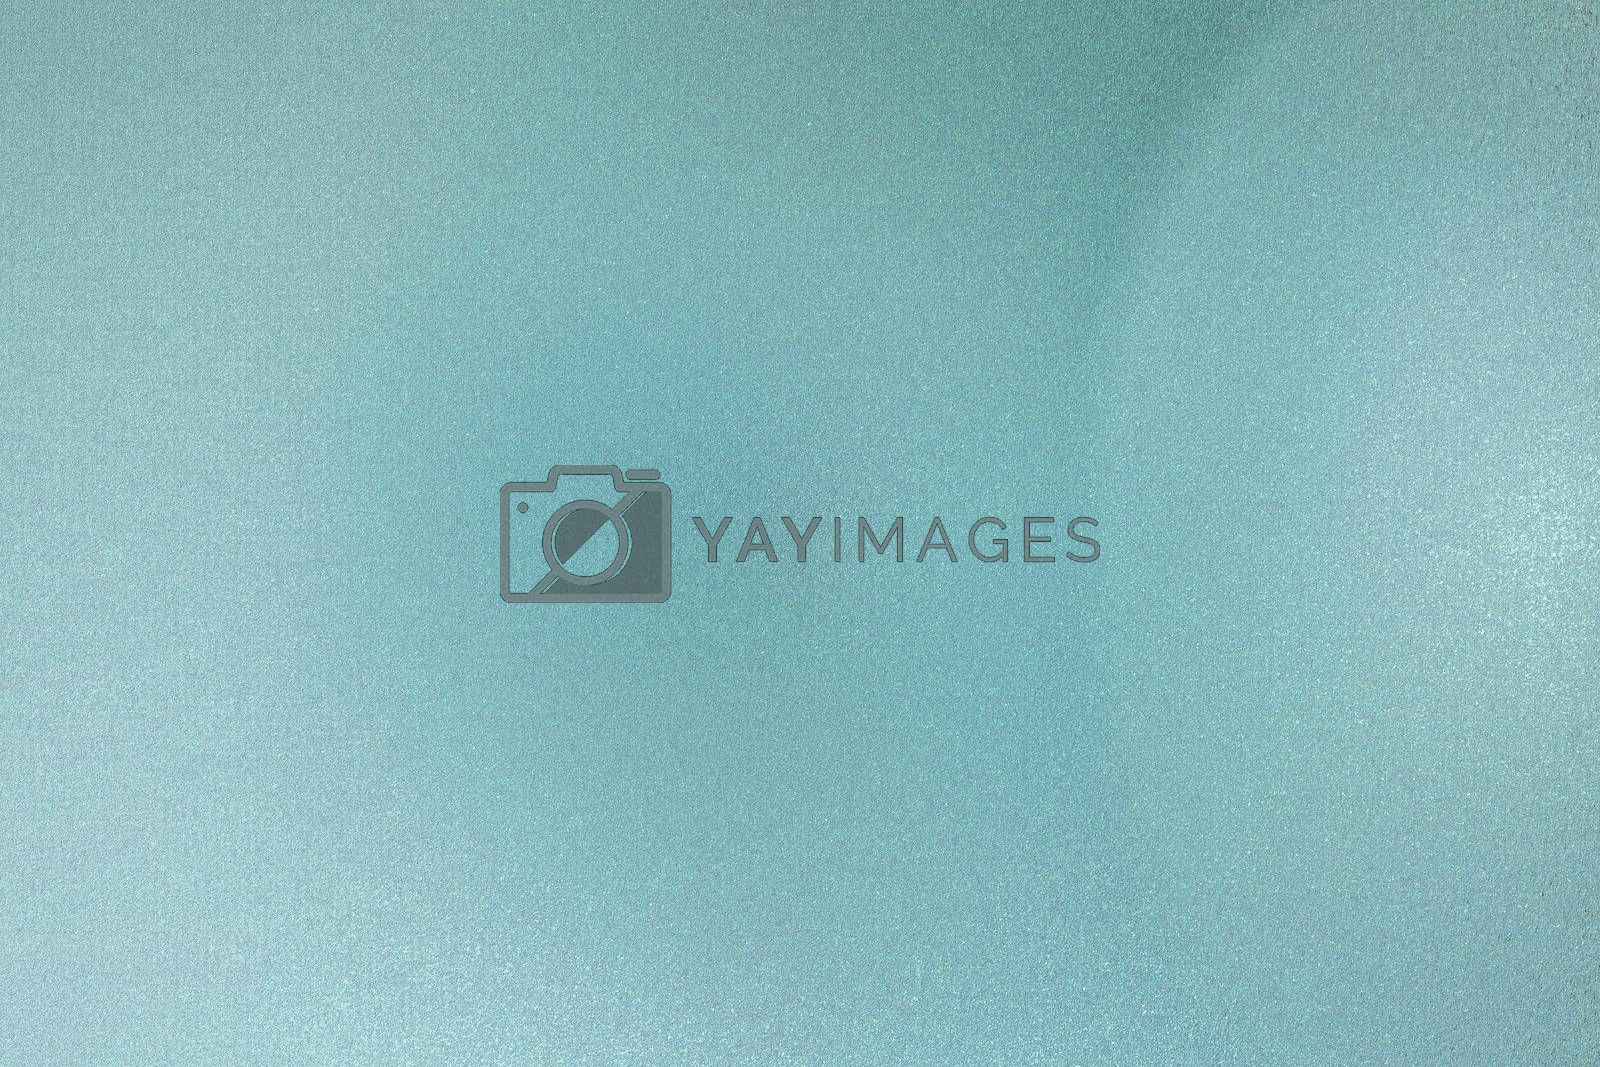 Royalty free image of Brushed teal wave metallic sheet, abstract texture background by mouu007